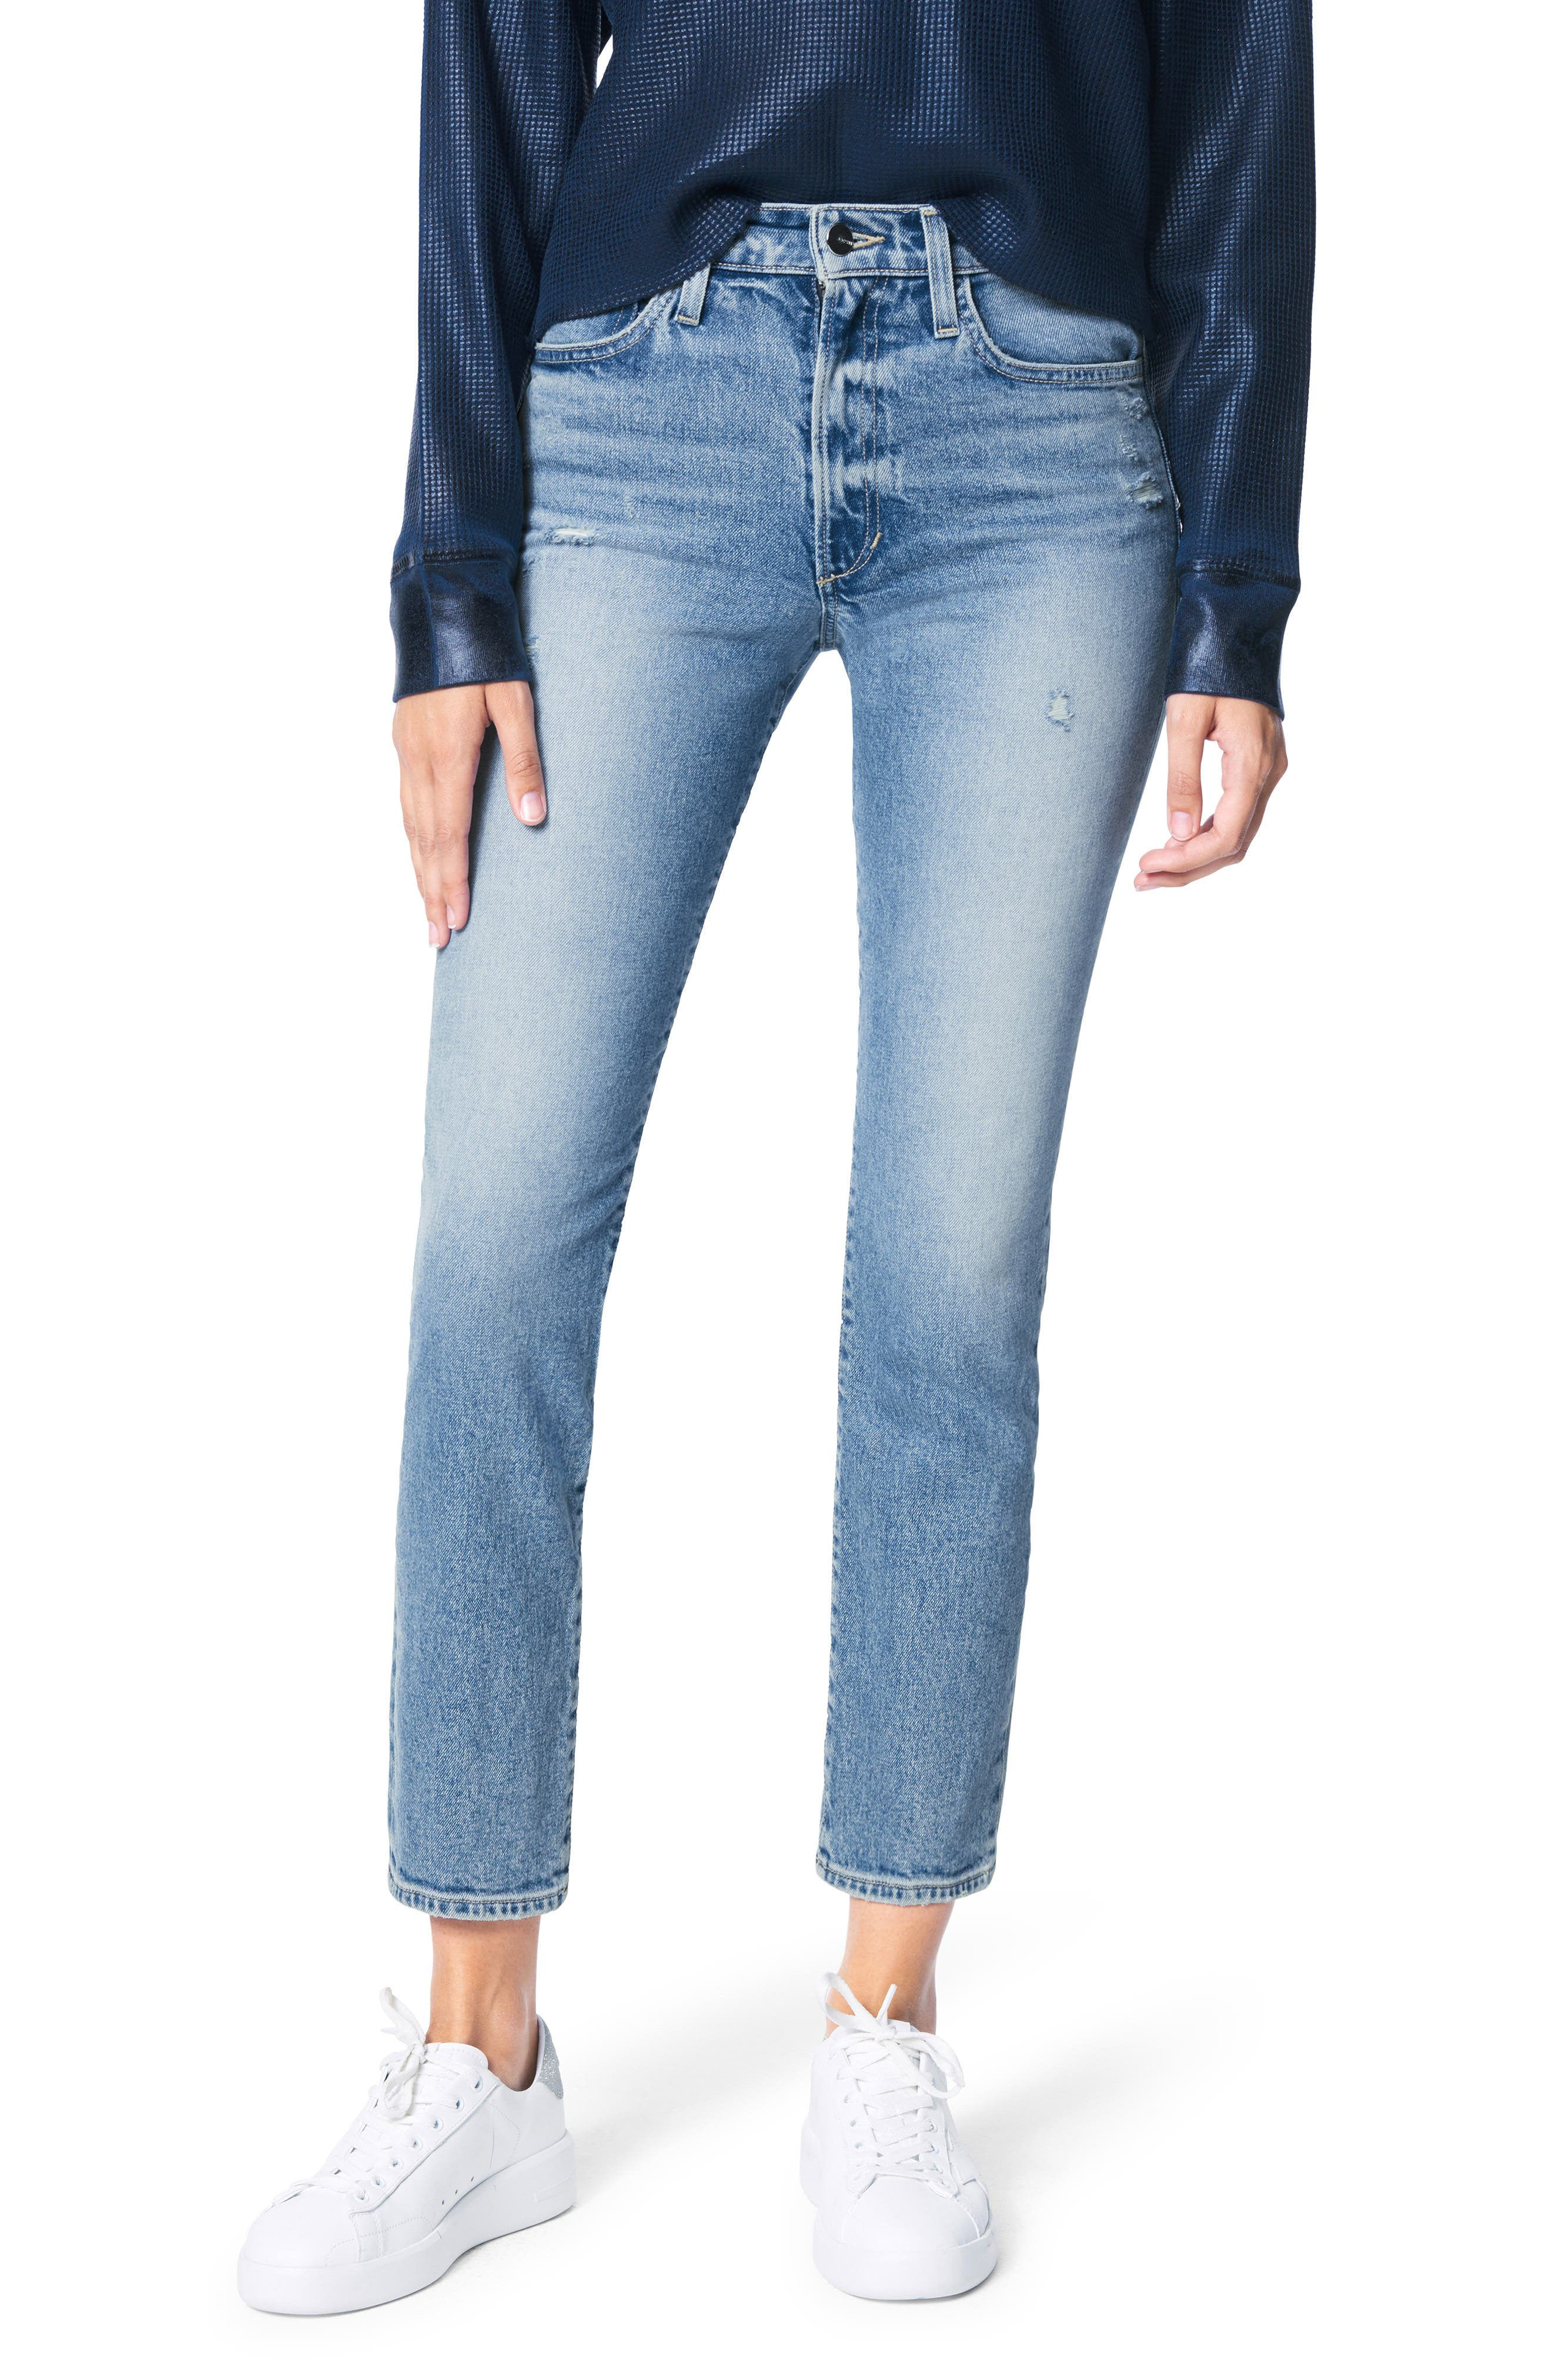 The Luna High Waist Distressed Ankle Cigarette Jeans